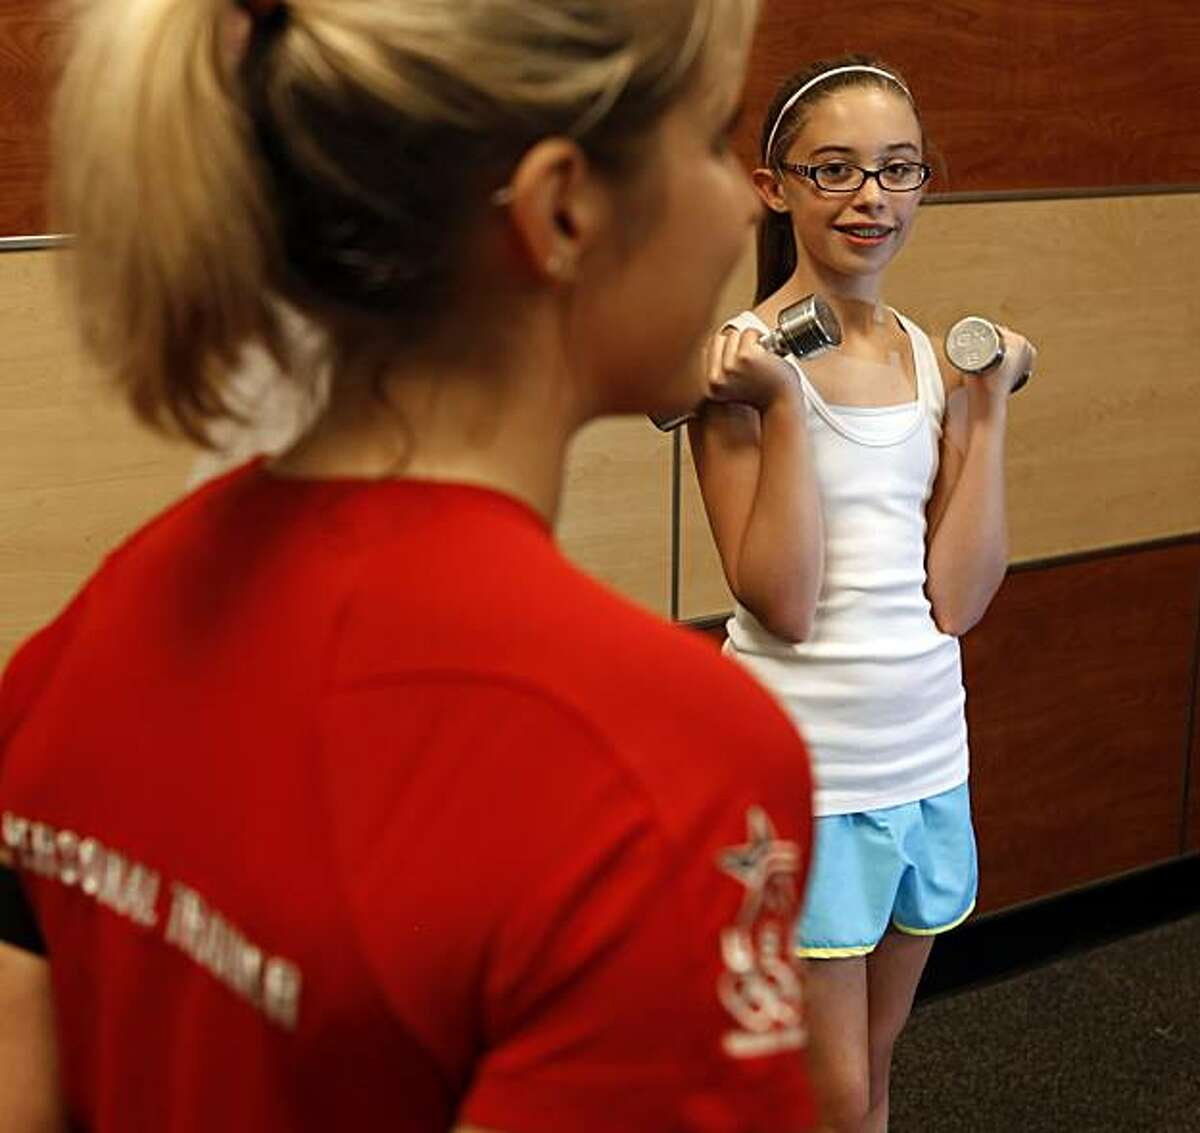 Trainer Terri Whitmore spots teenager Maddie McPhail in the proper way to lift and do strength training at 24 Hour Fitness in Rheem, Calif., on Tuesday, May 4, 2010. A new study shows that injuries among teen girl weight lifters has shot up 143% between 1990 and 2007.